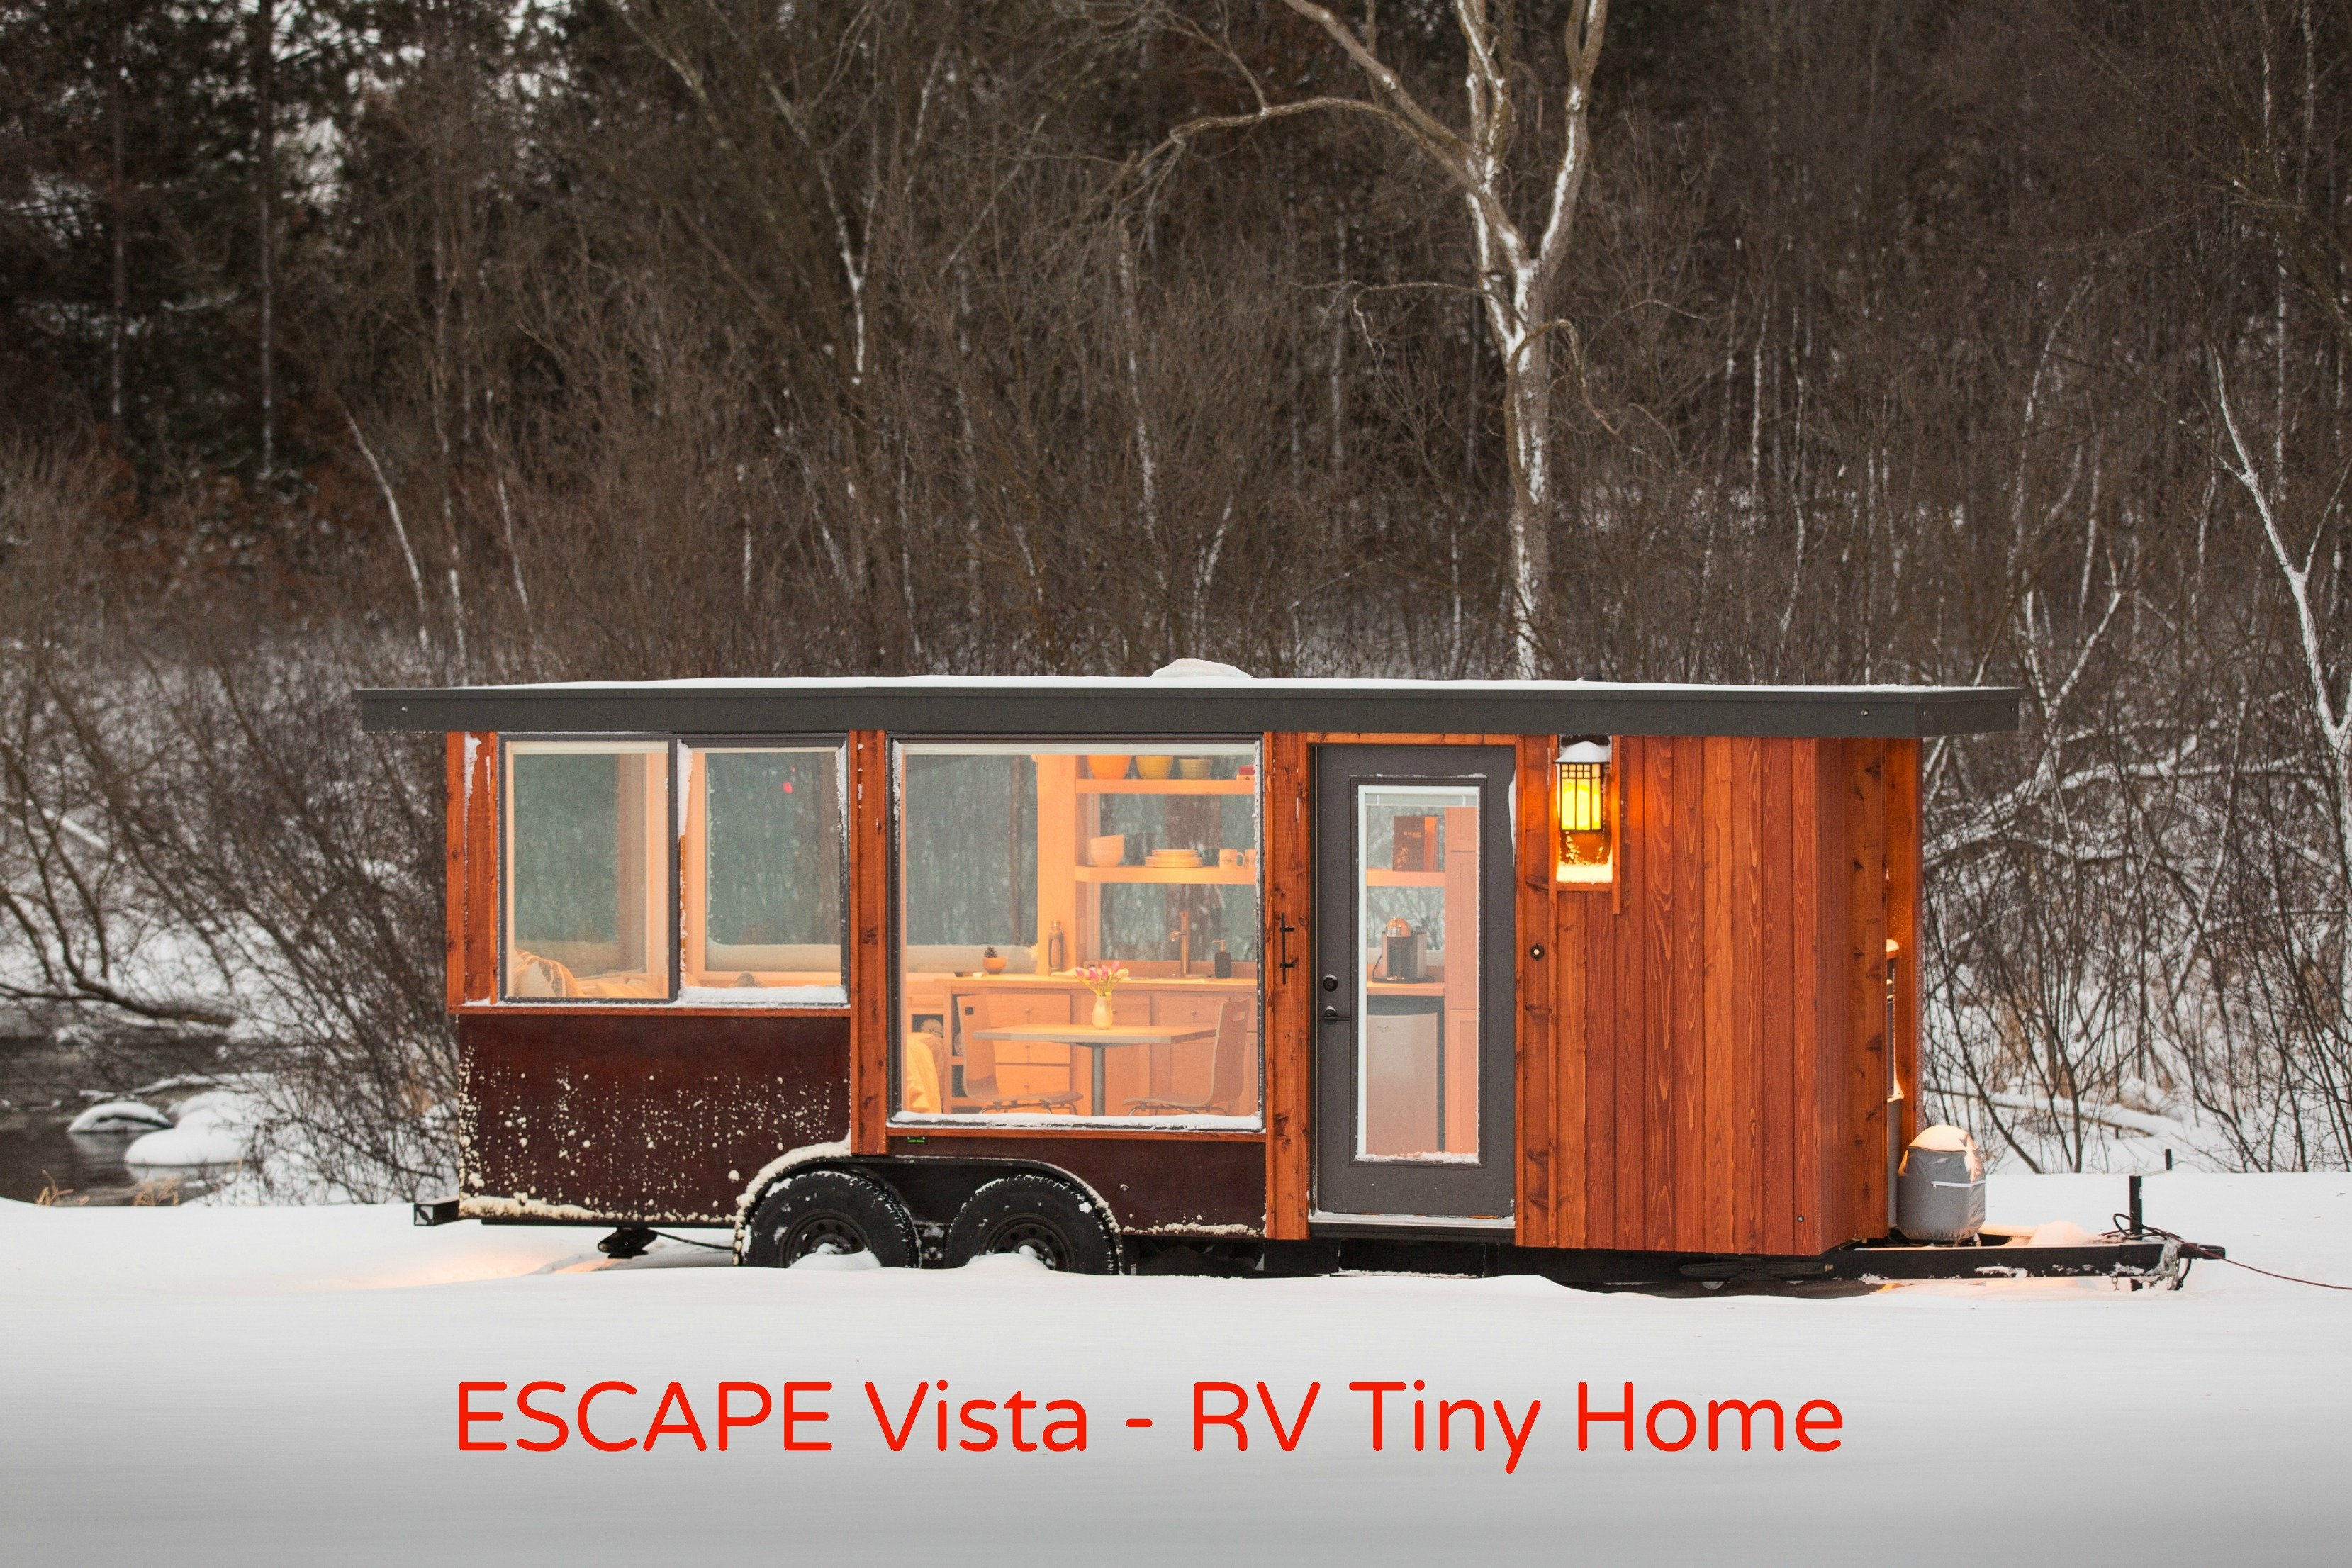 Come see ESCAPE Vista the new RV Tiny Home